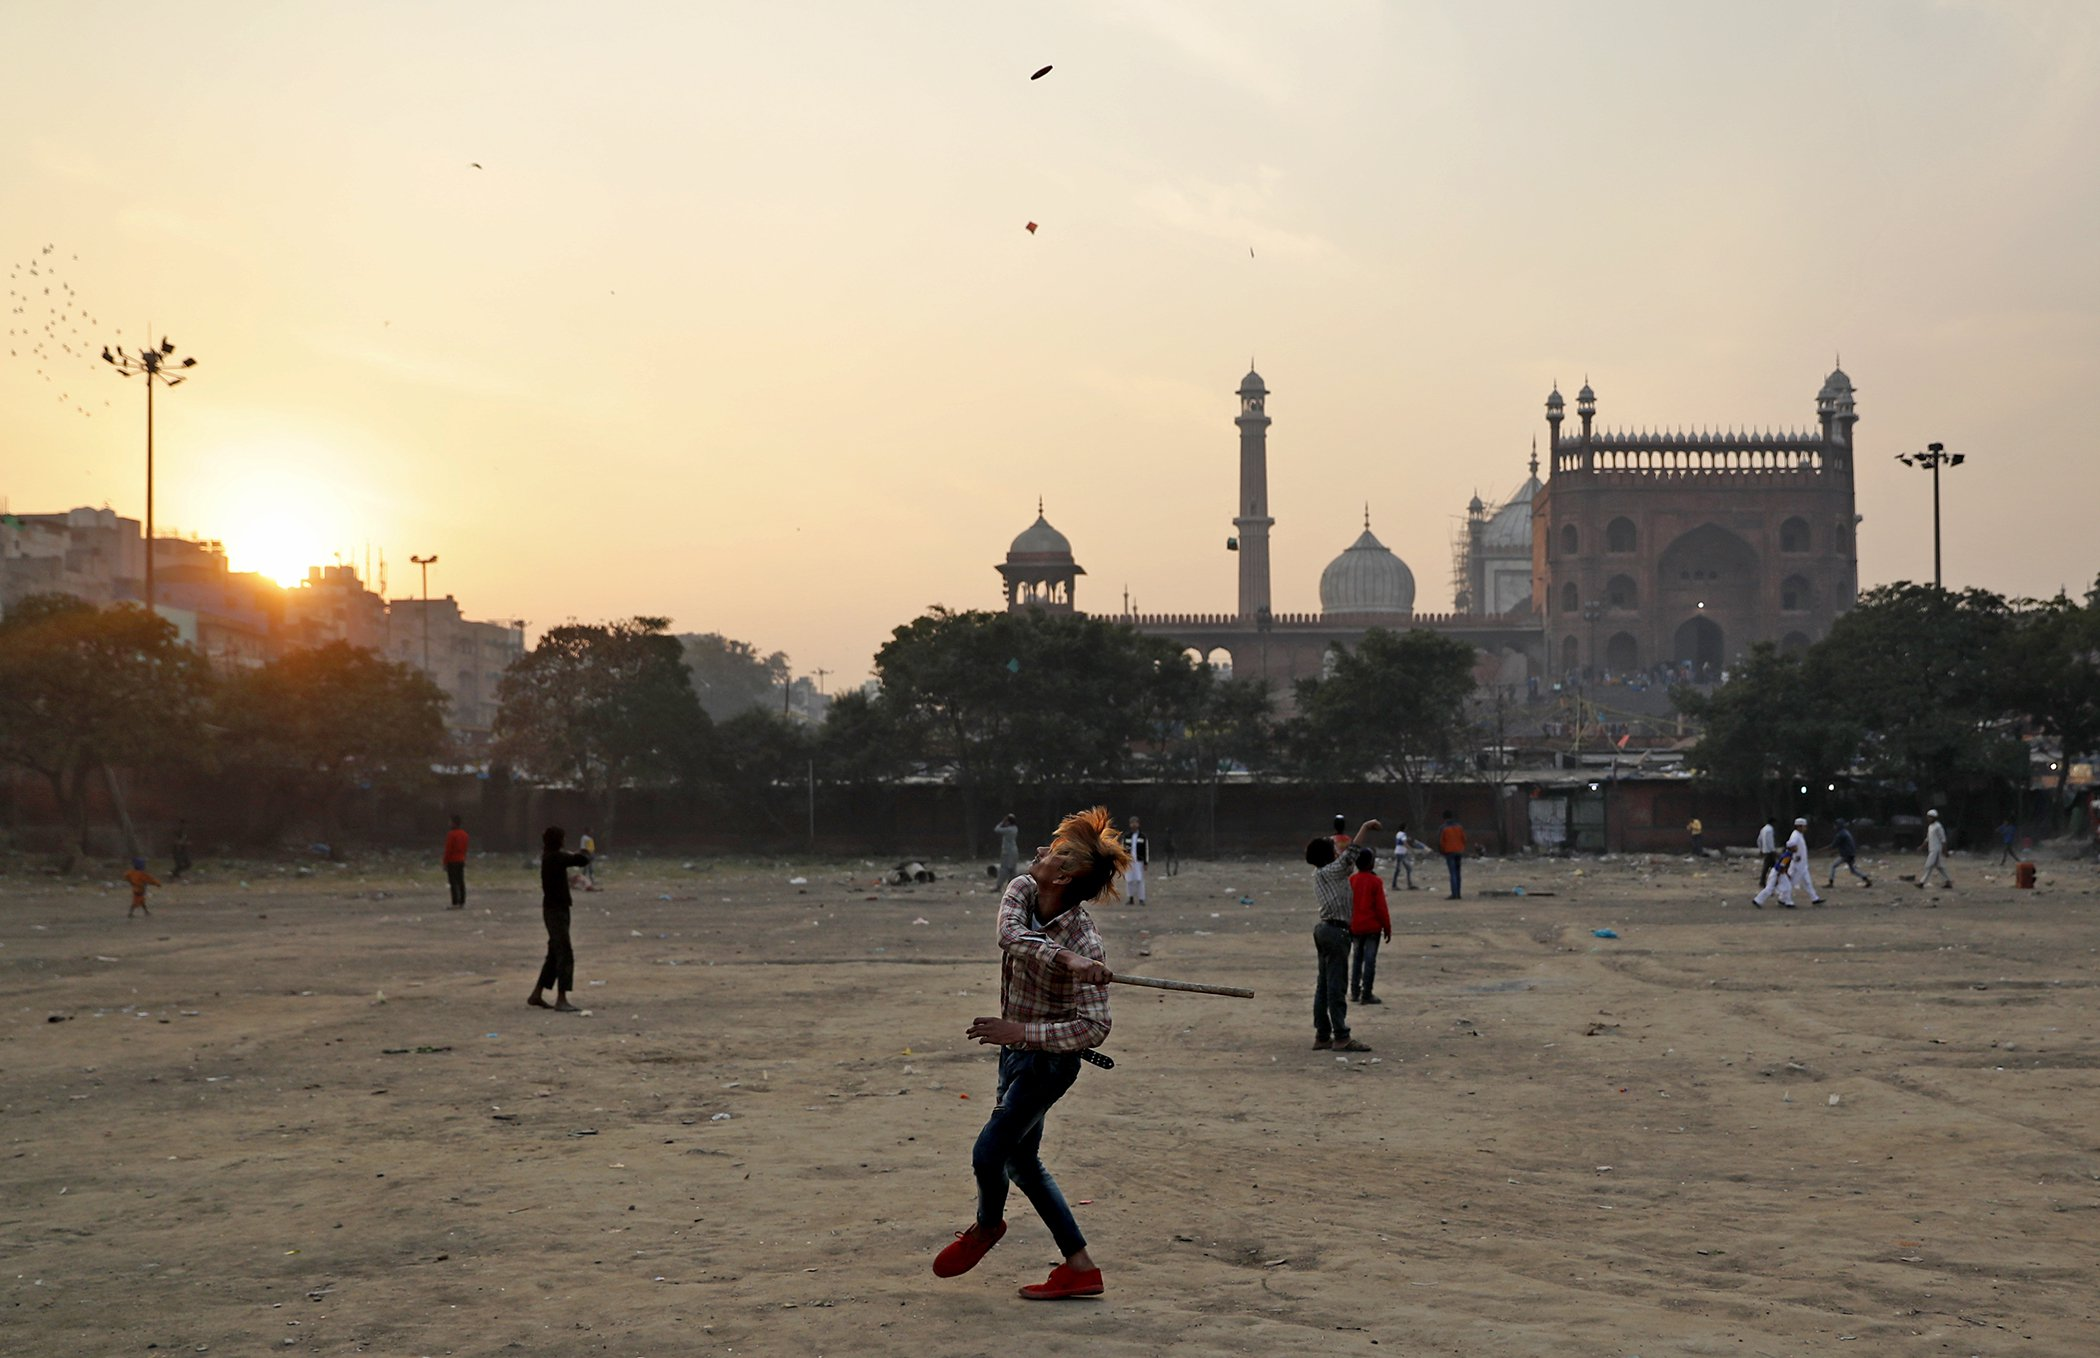 India-Daily-Life-Cricket.jpg